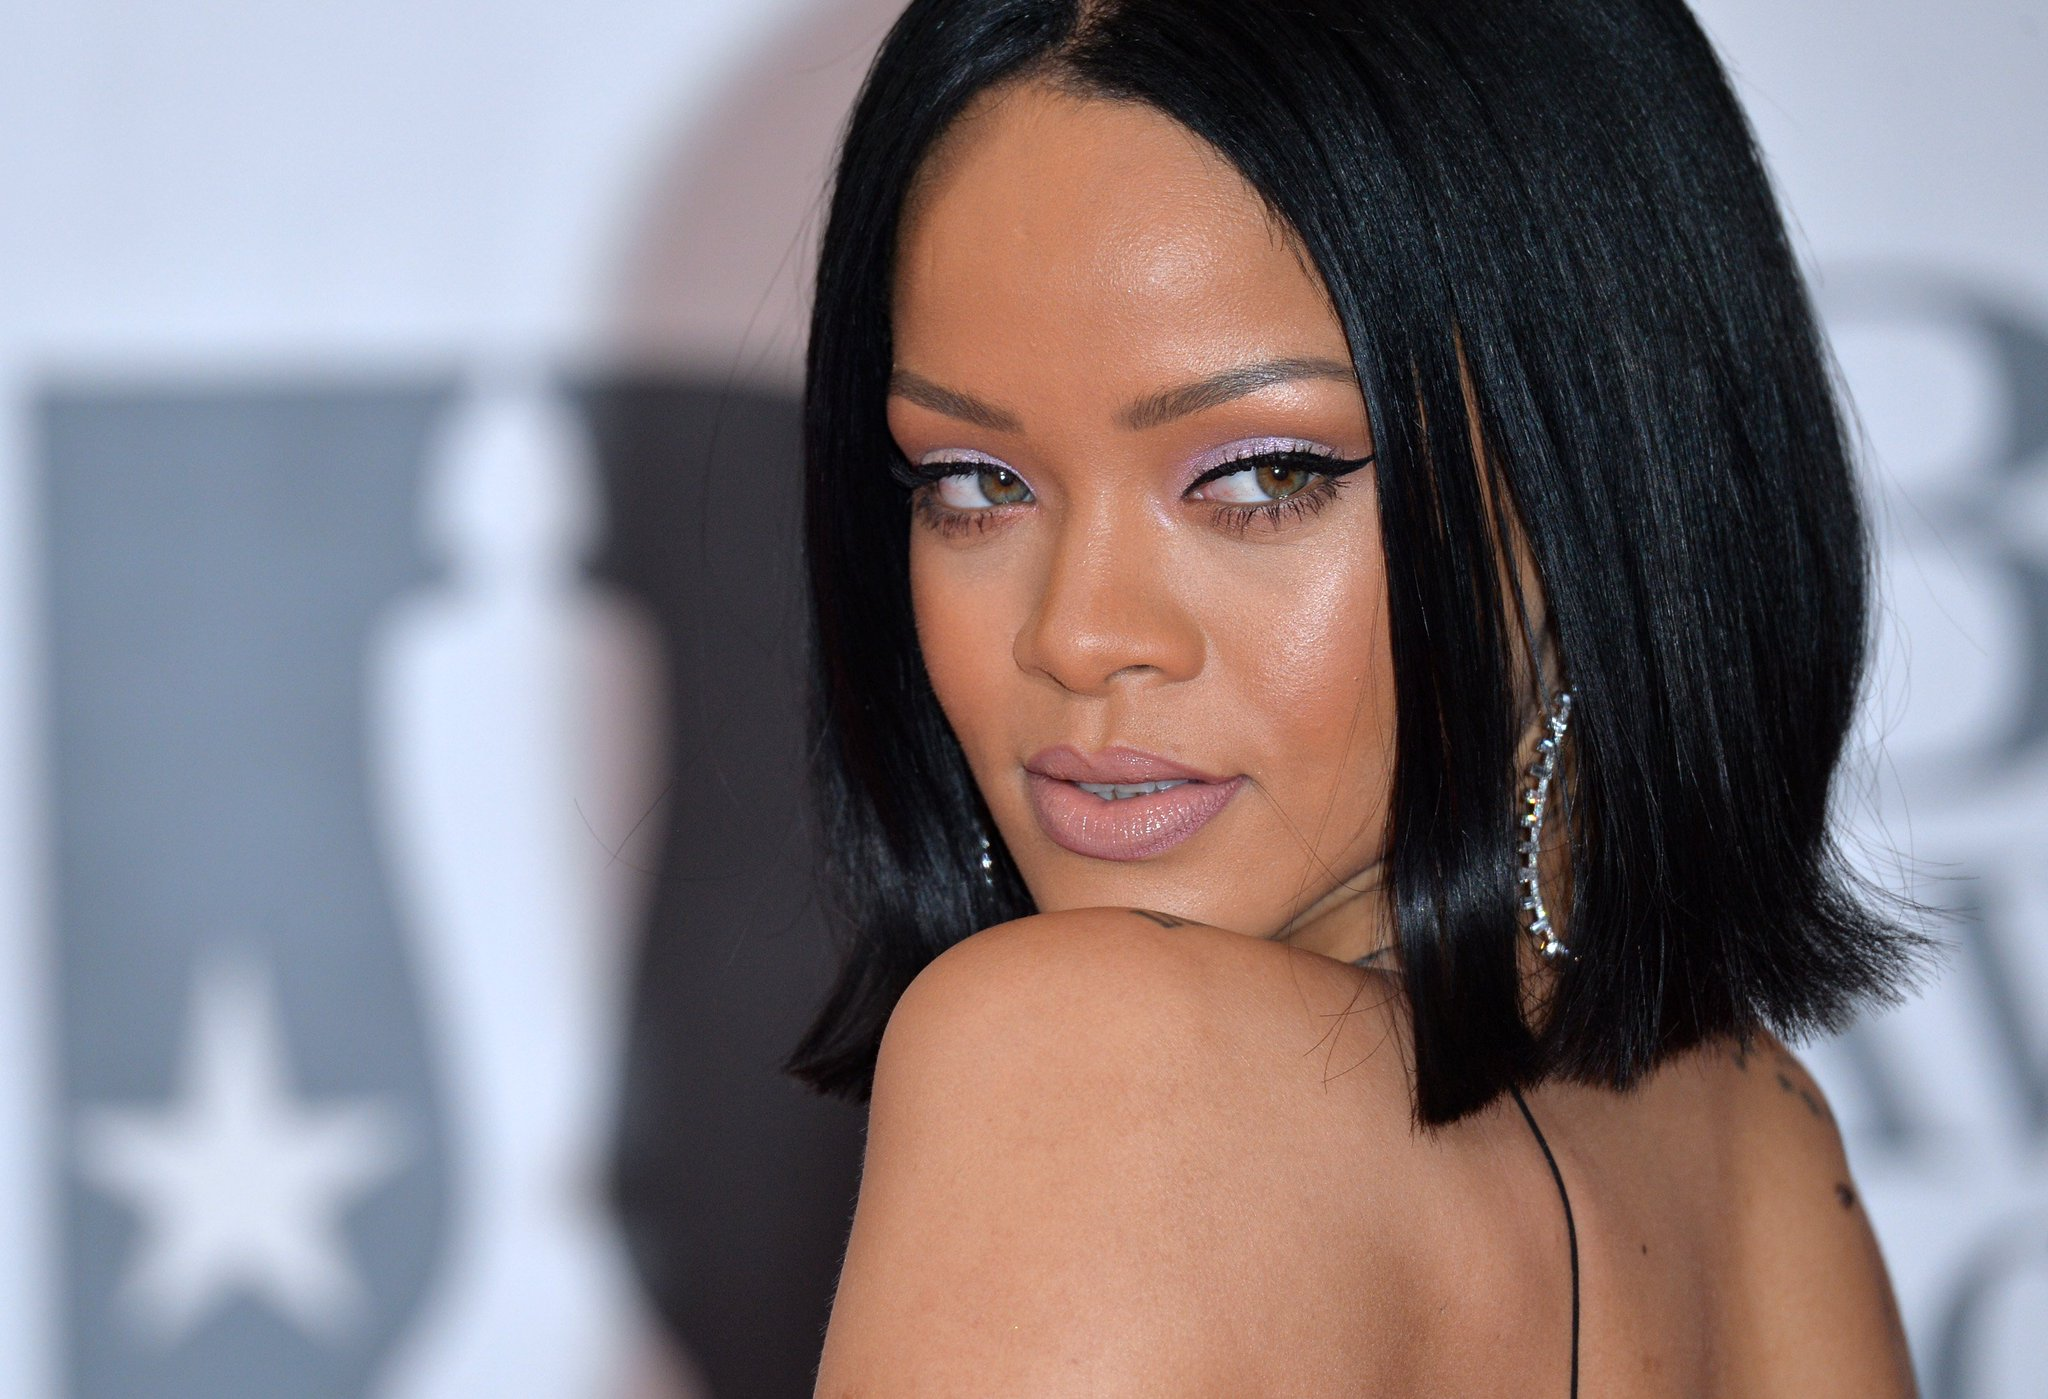 Rihanna Just Announced Her New Acting Gig and the Role Is Iconic AF https://t.co/L4JVHpUcl2 https://t.co/wE1qJpvhXN